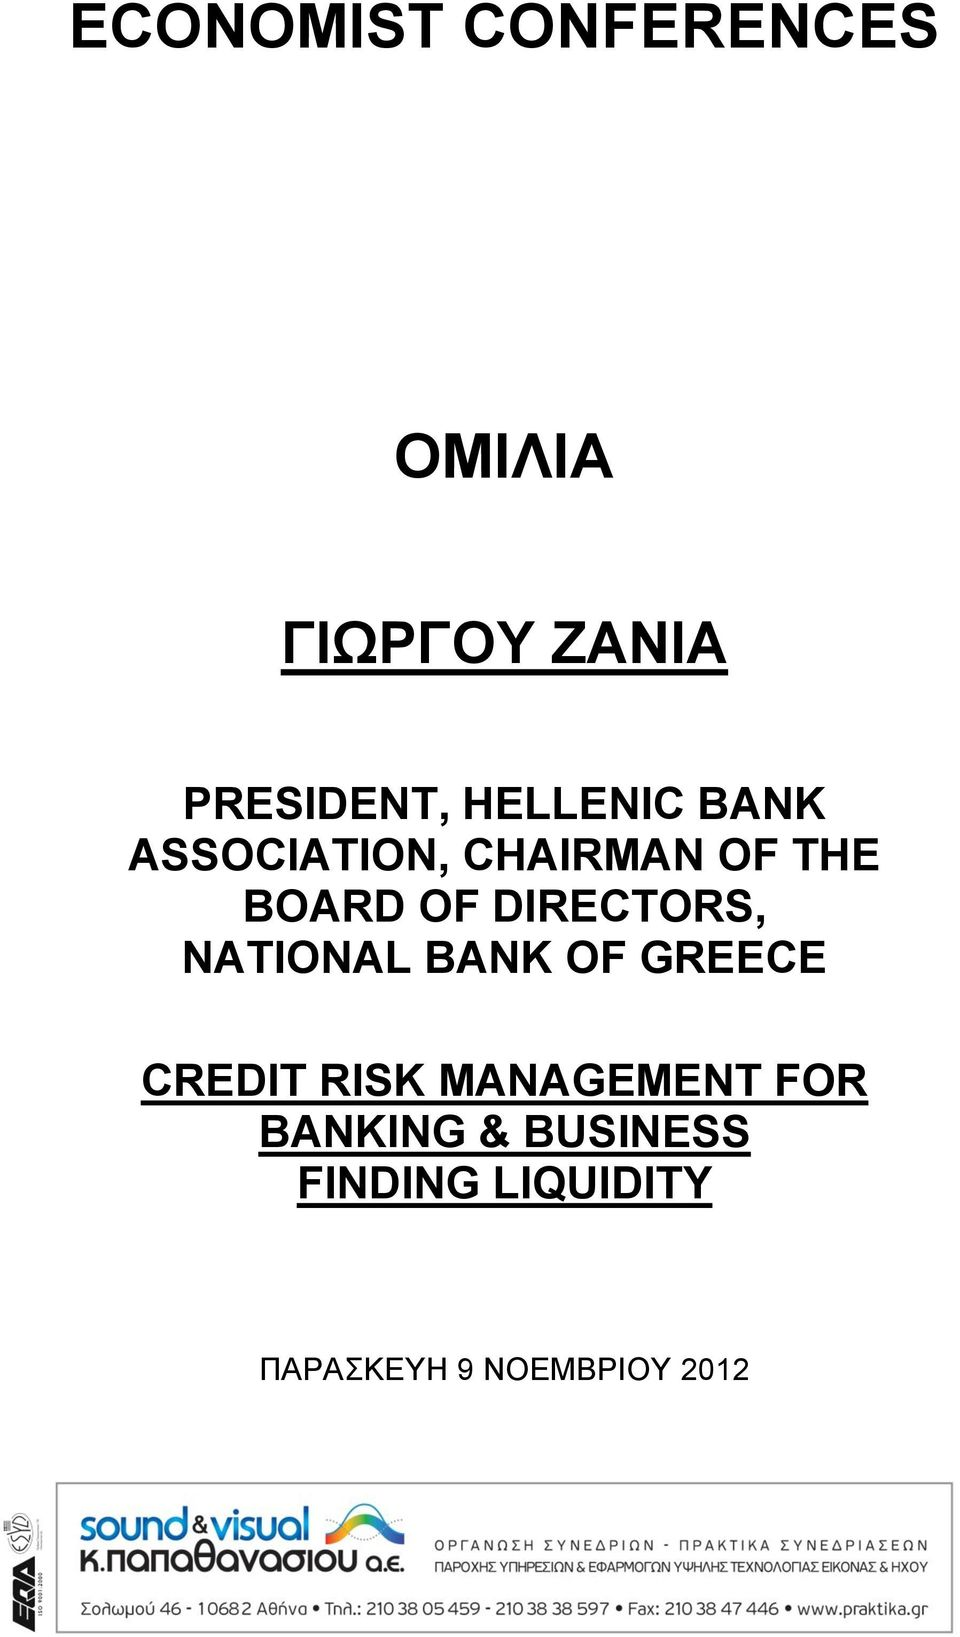 DIRECTORS, NATIONAL BANK OF GREECE CREDIT RISK MANAGEMENT